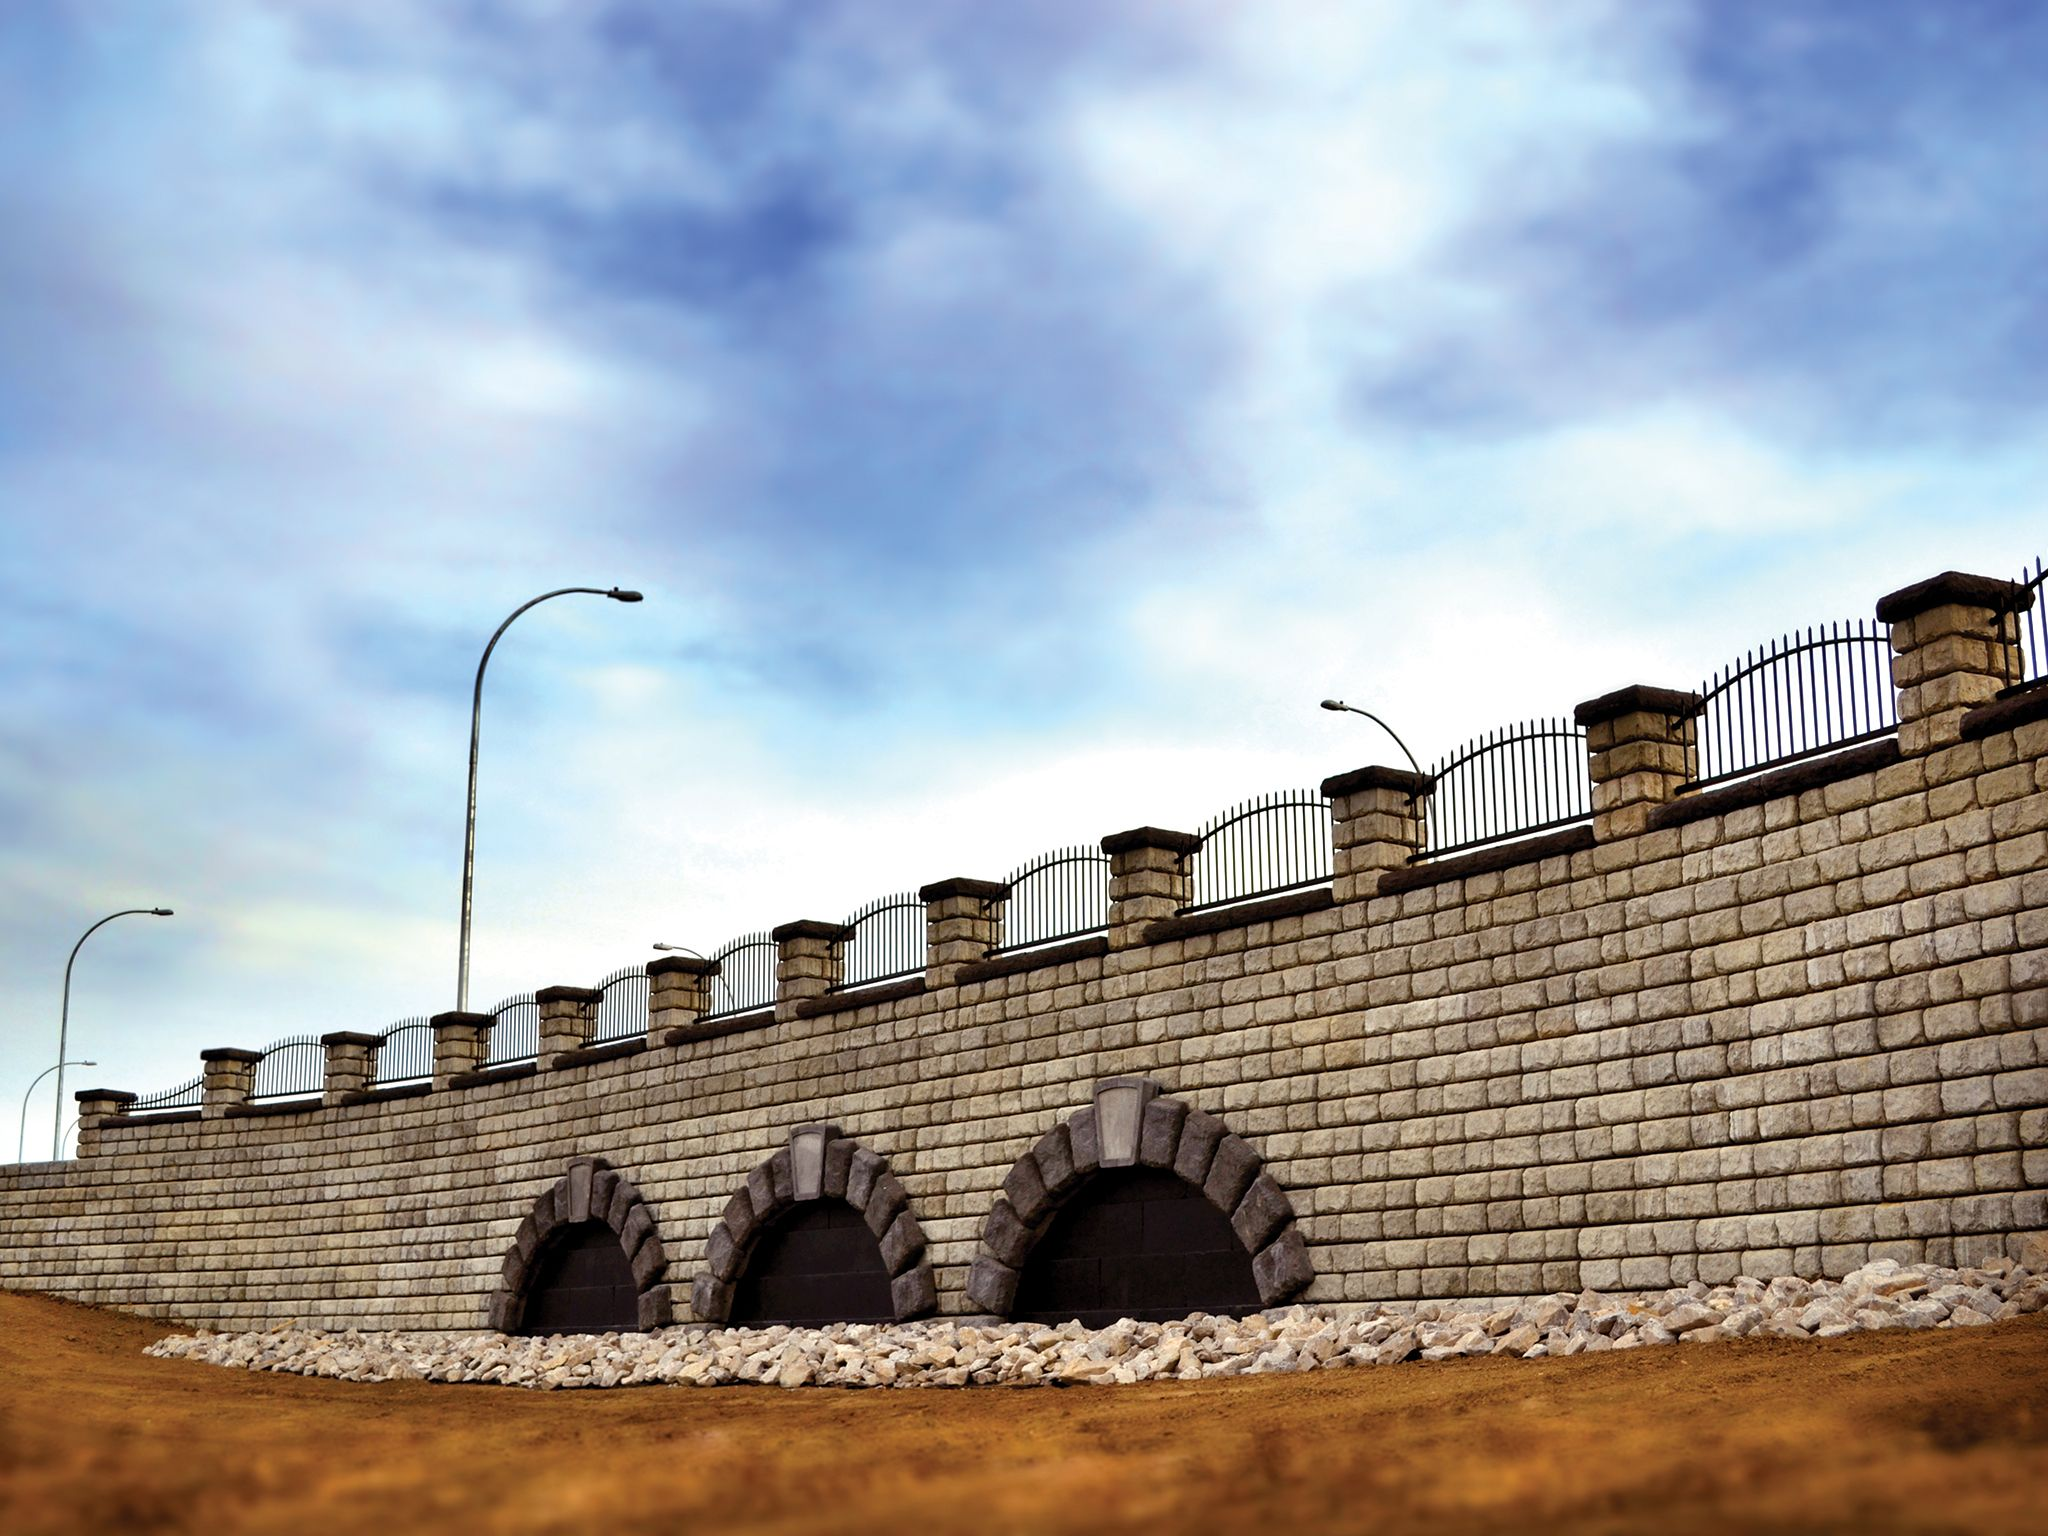 Completed Cobblestone wall with columns and fencing